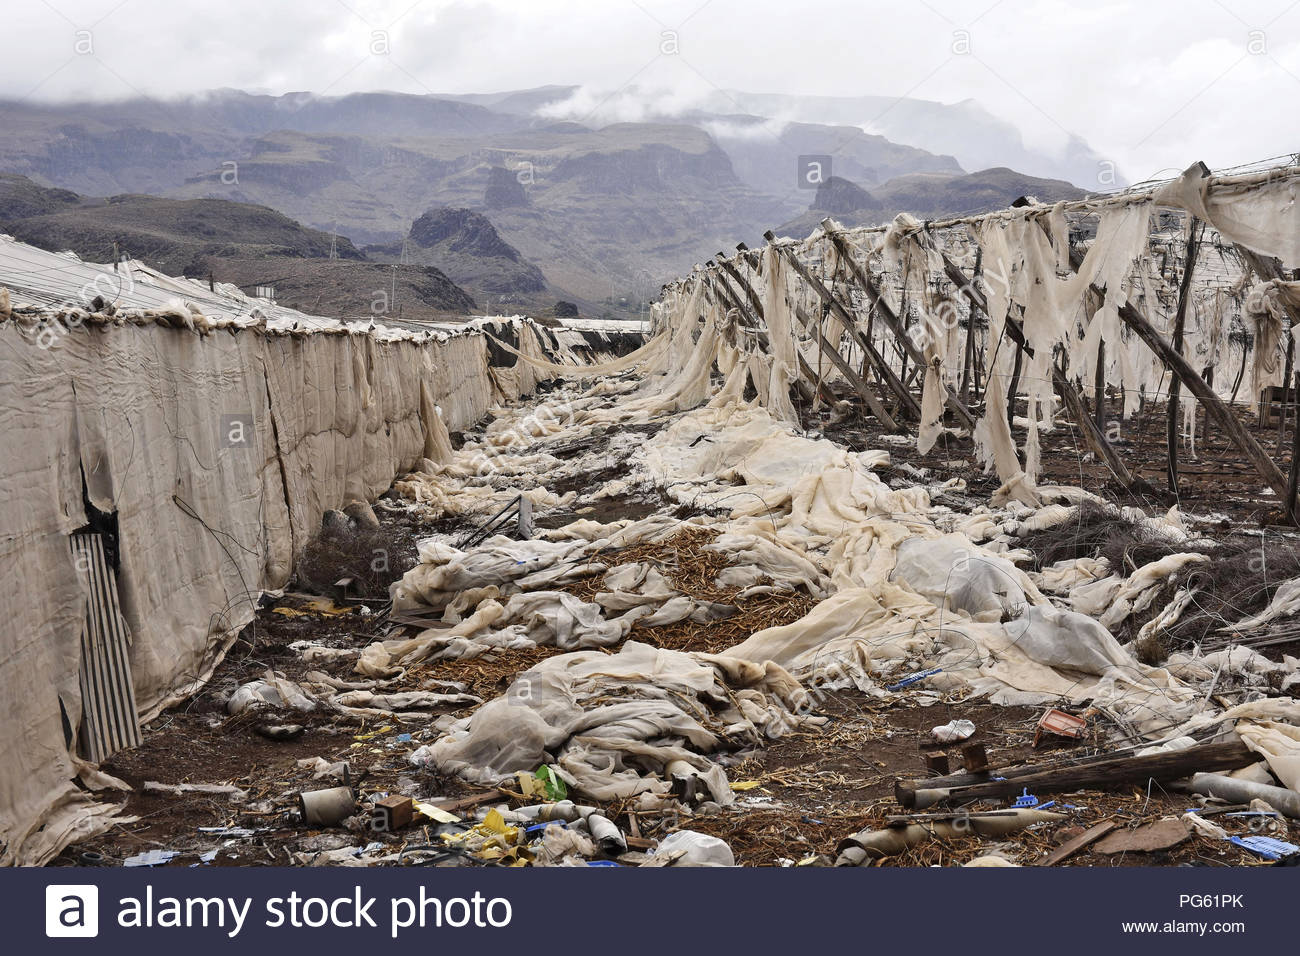 Abandoned broken greenhouse structures plastic pollution contamination Gran Canaria Canary Islands Macaronesia (Spain) - Stock Image